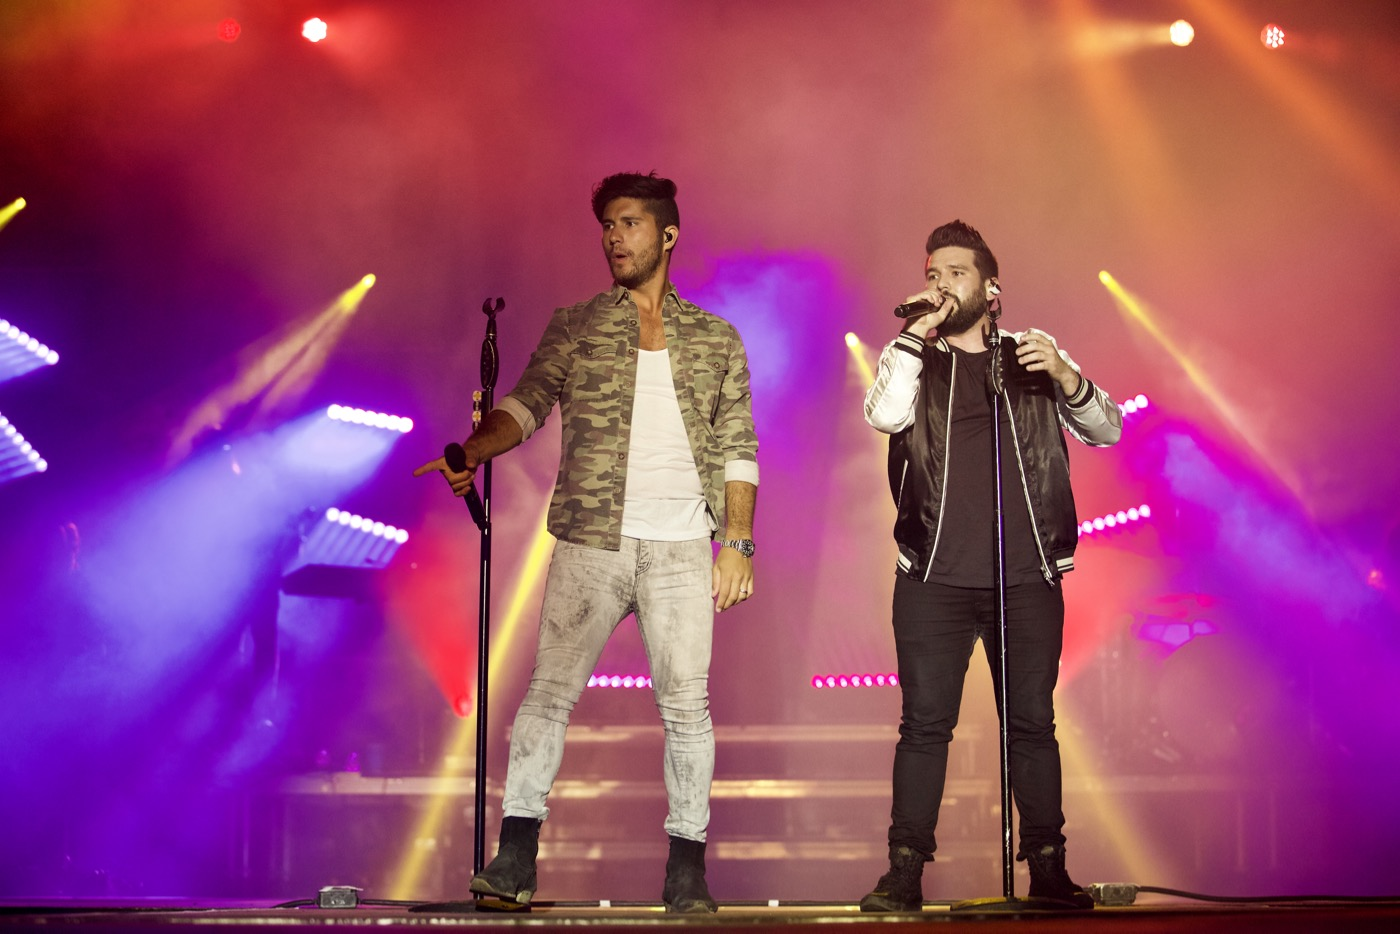 Dan and Shay @ MuscleKingz Car Show & Concert at SilverLakes Sports Complex July 1, 2017 || Photo by Derrick K. Lee, Esq. (@Methodman13) for www.BlurredCulture.com.